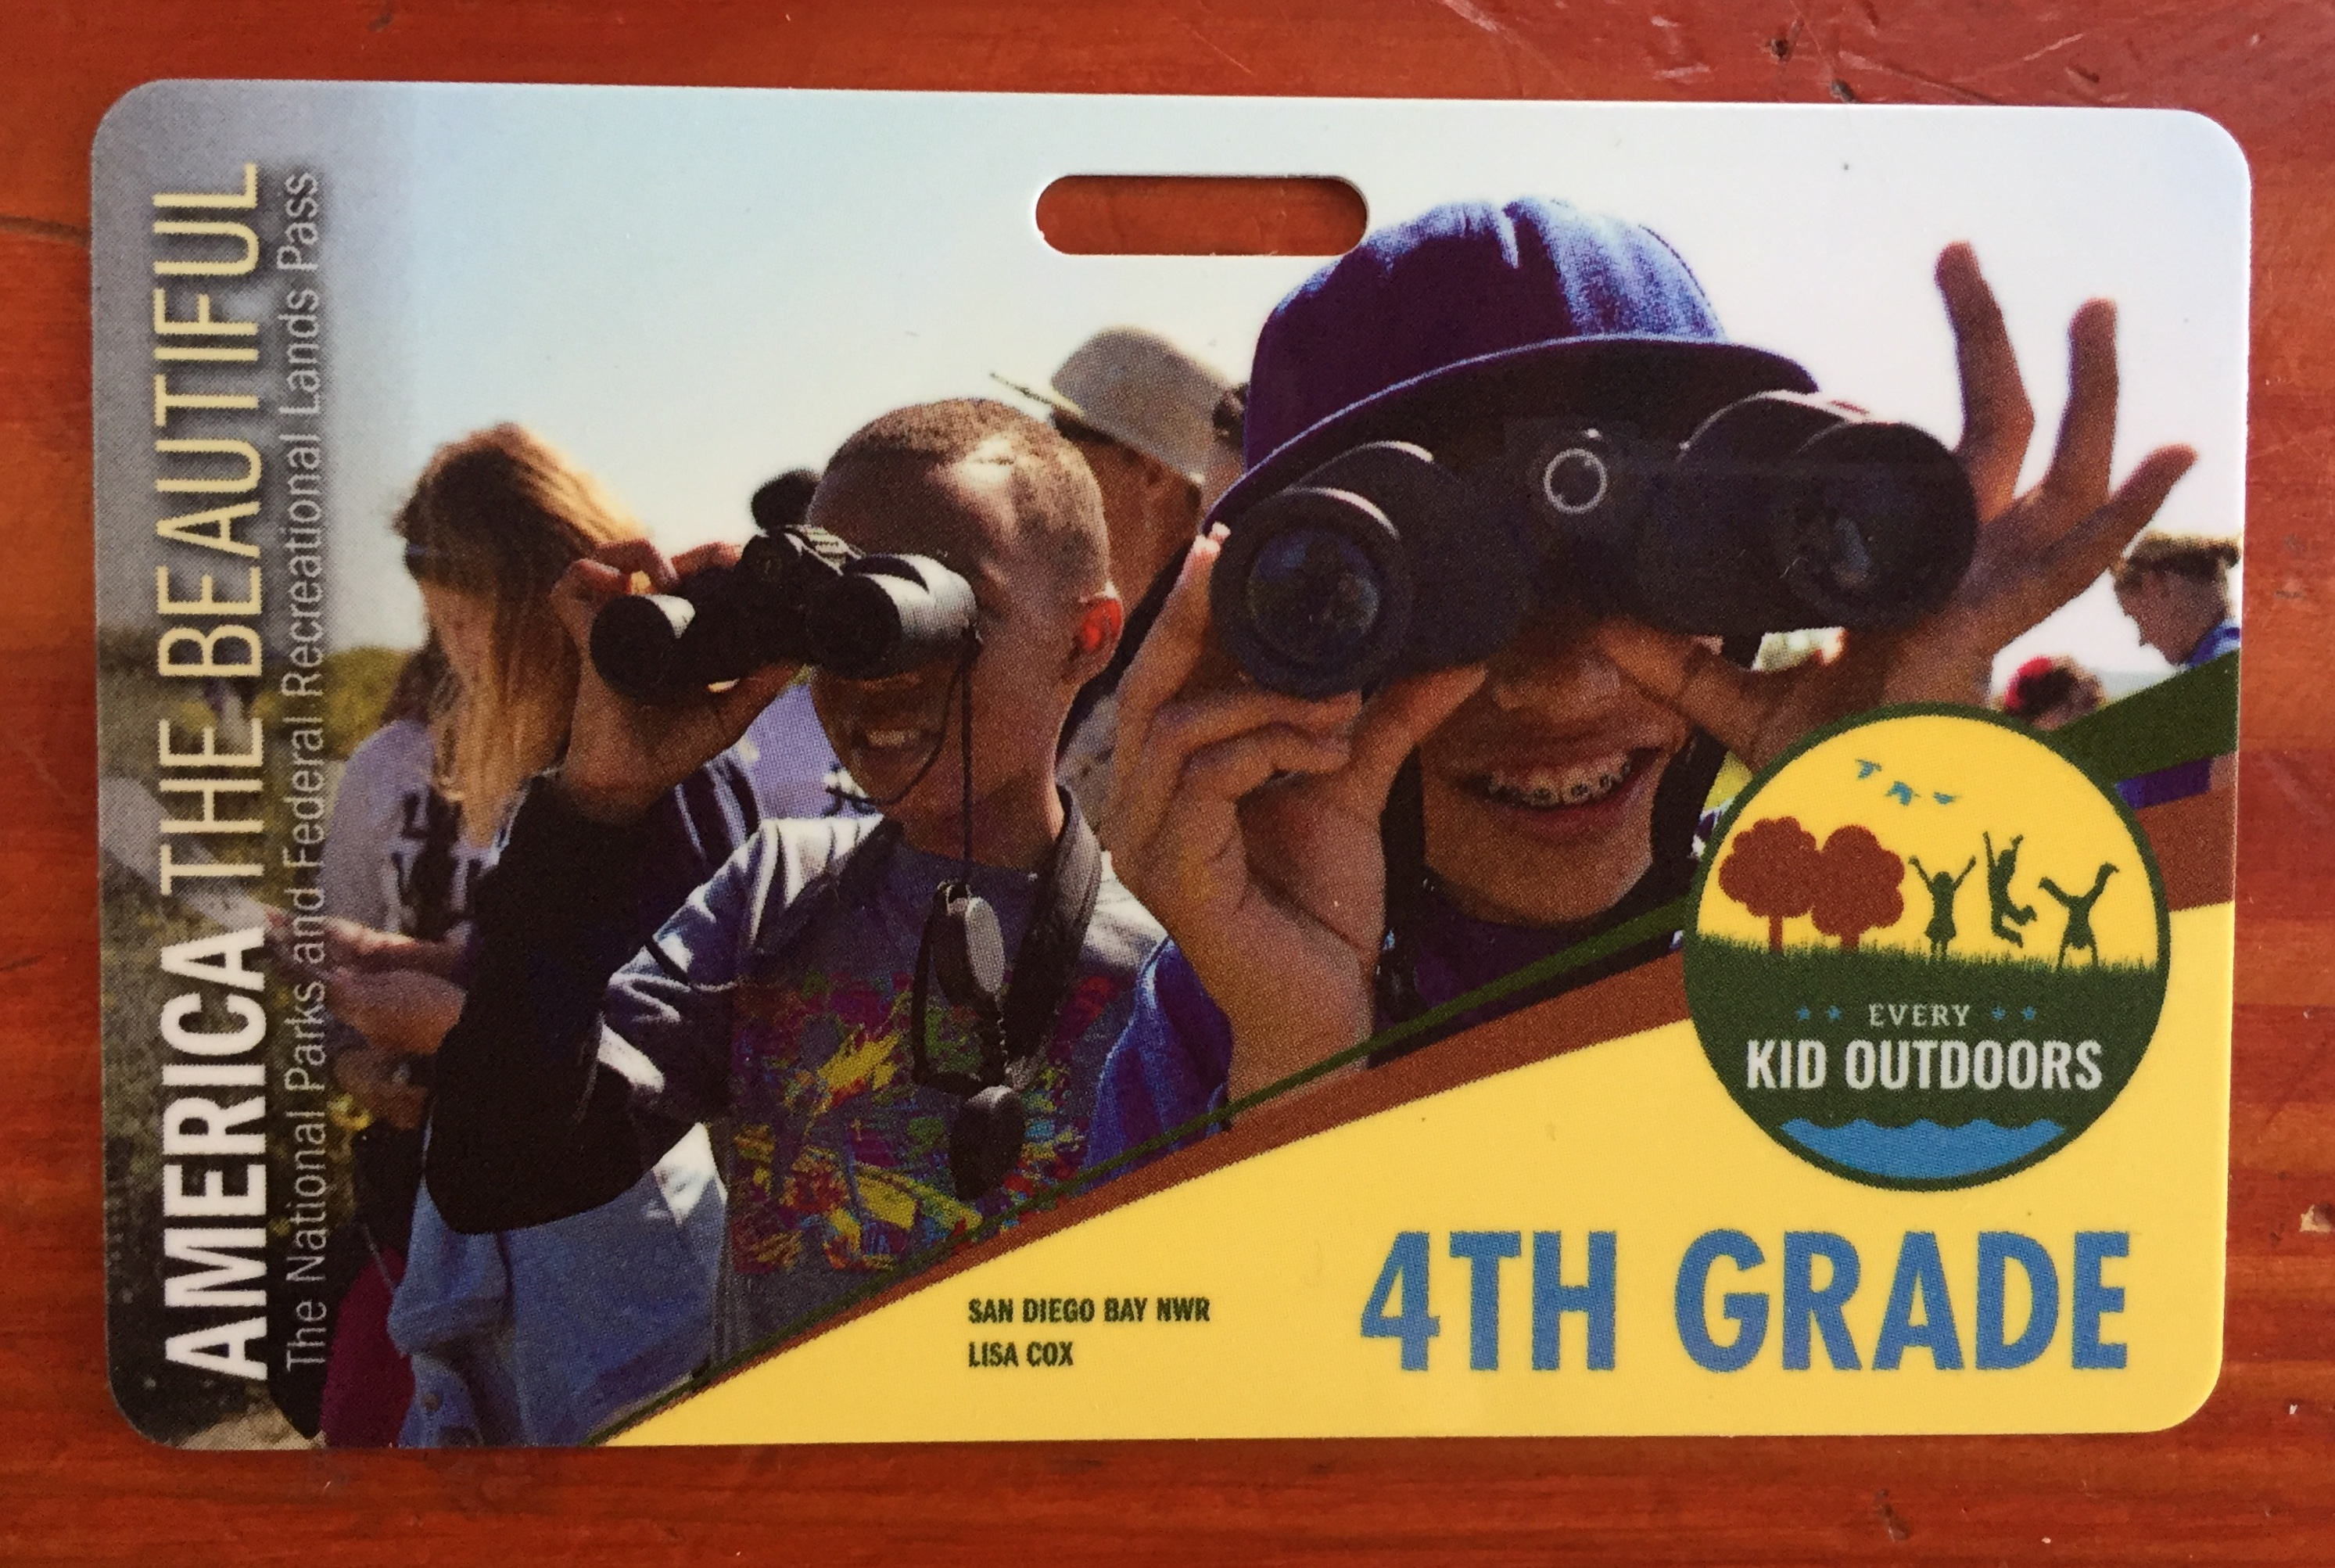 Free fourth grade pass for ten year old kids to National Parks from Every Kid Outdoors